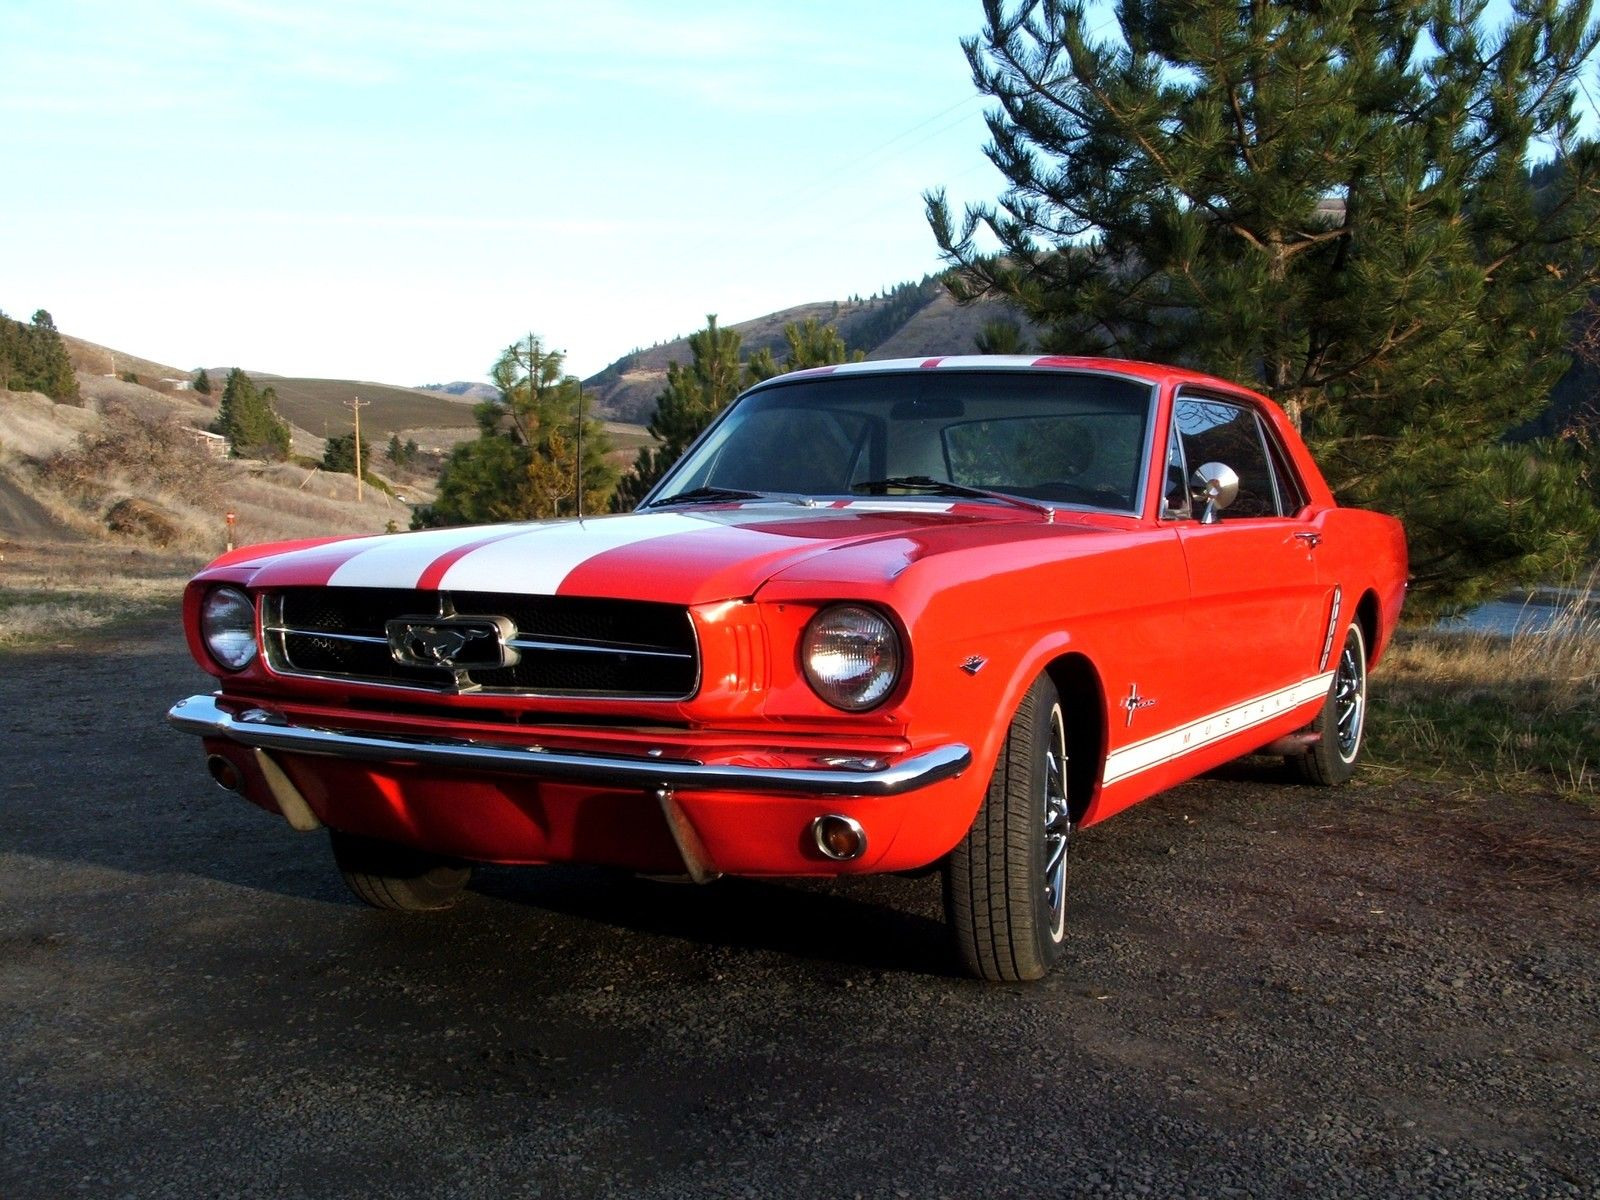 1966 ford mustang vin location 1966 ford mustang msrp. Black Bedroom Furniture Sets. Home Design Ideas